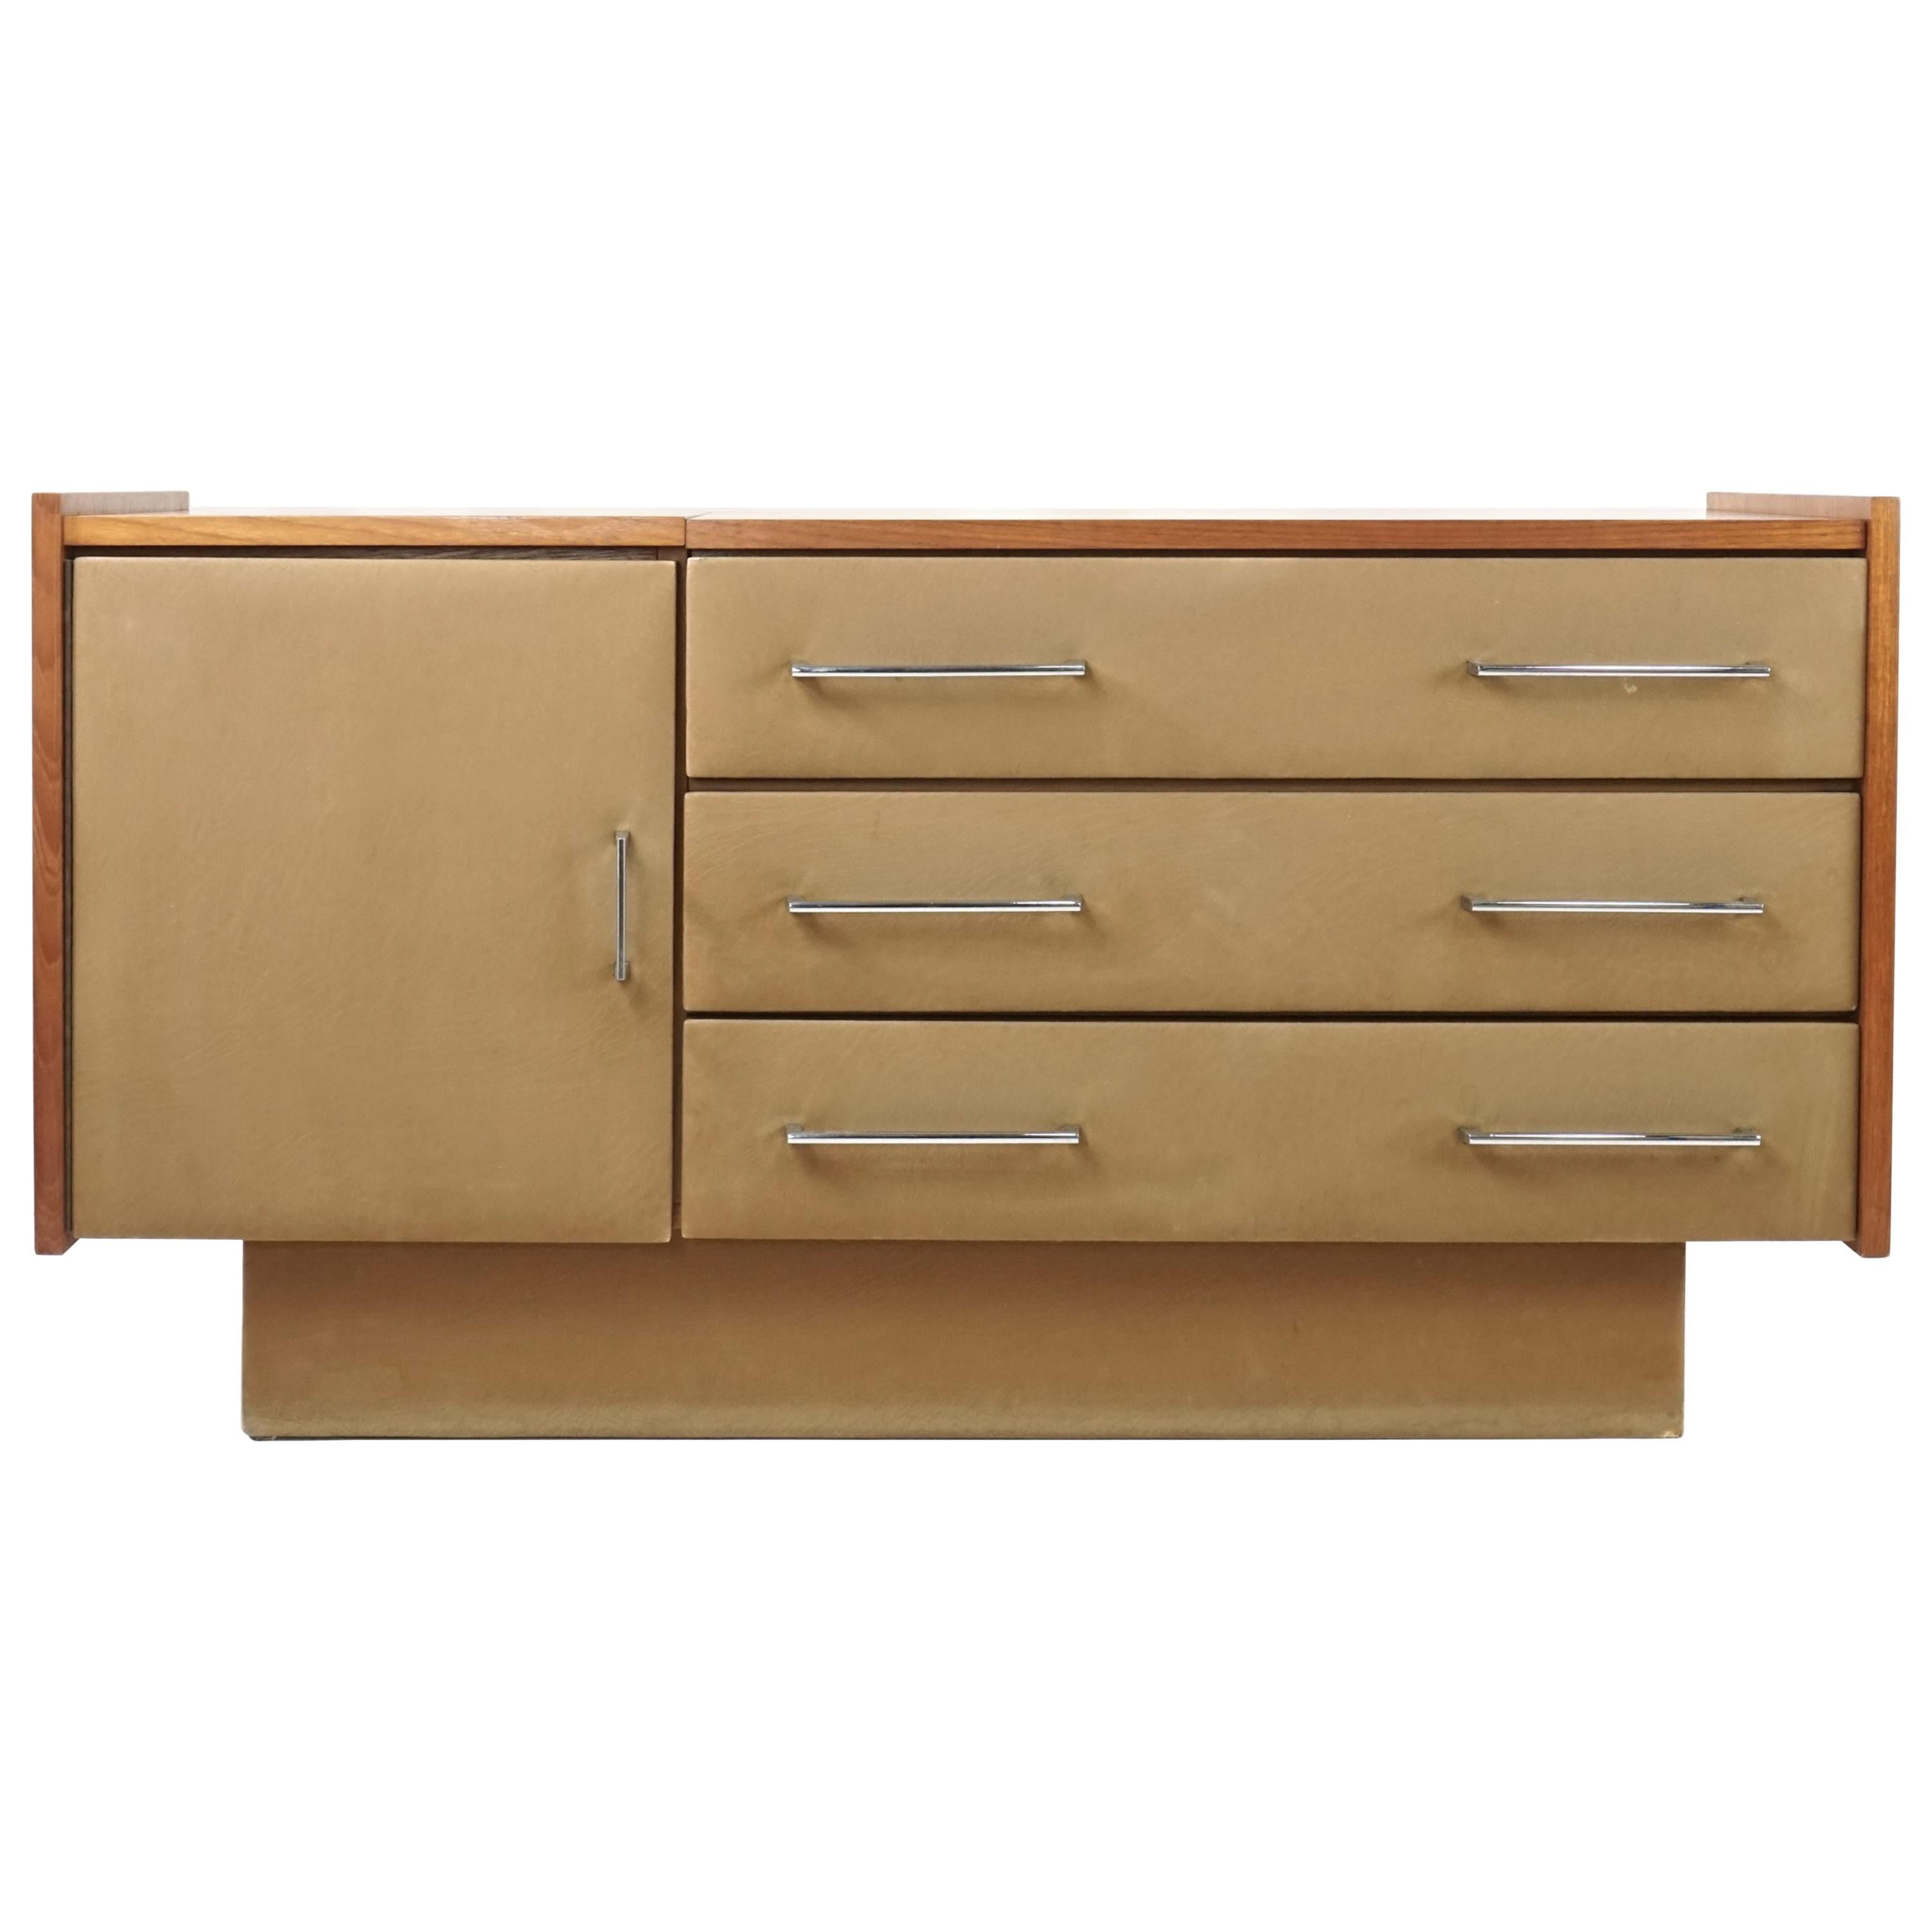 French 1950s - 1960s Design Chest of Drawers by Roger Landault for Regy